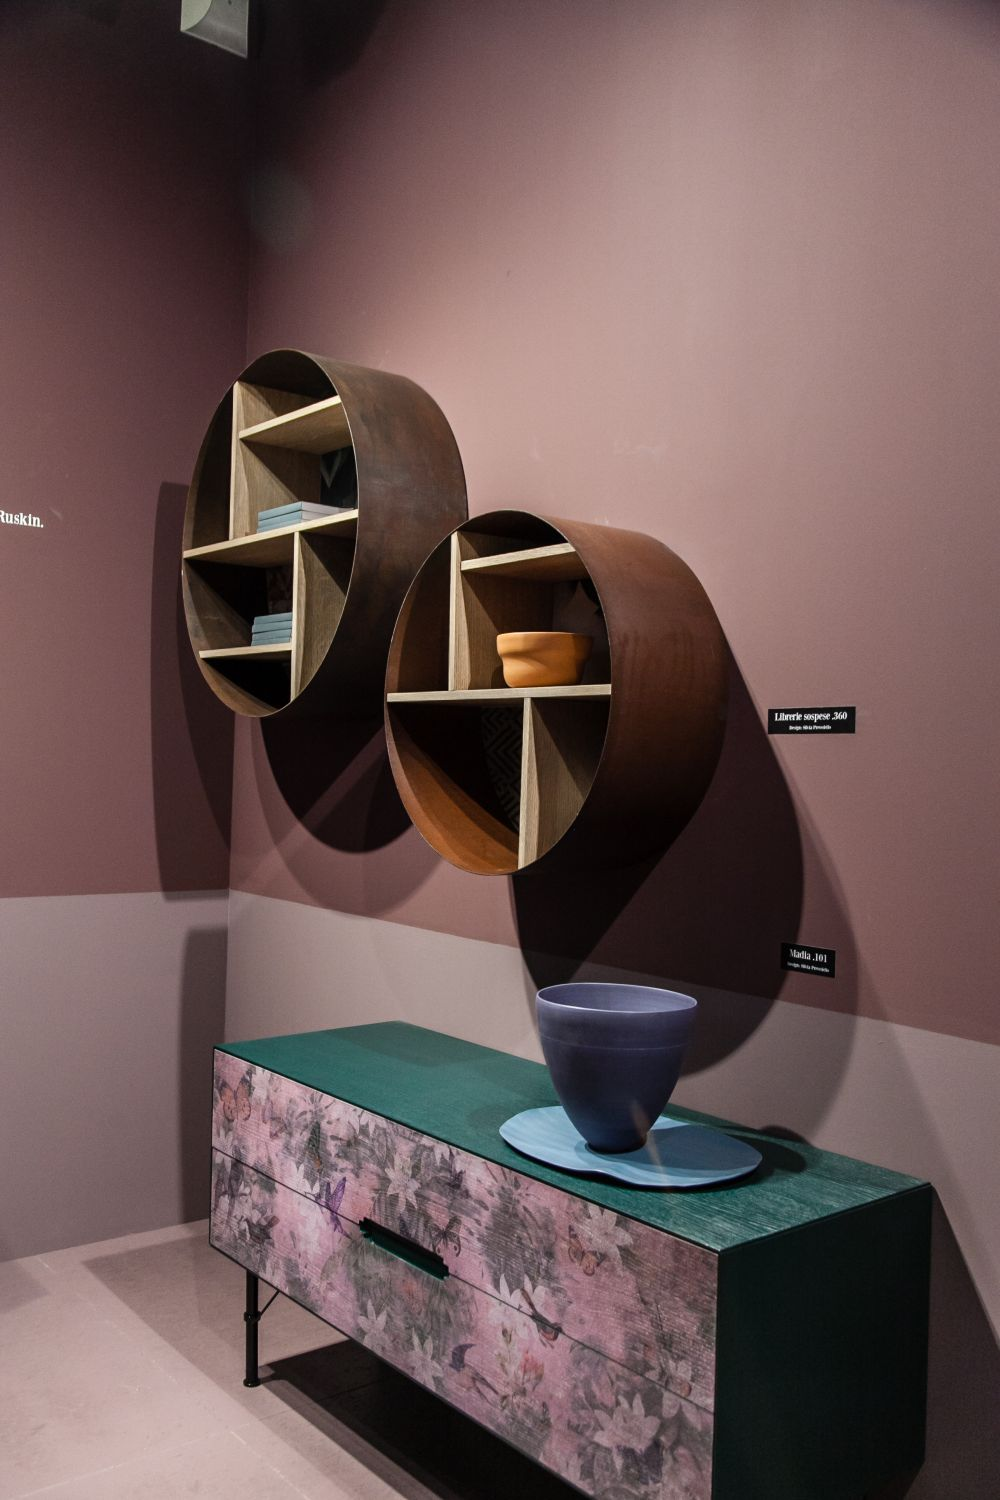 Not all shelves are flat and simple. Some are combined into interesting-looking modules like these ones